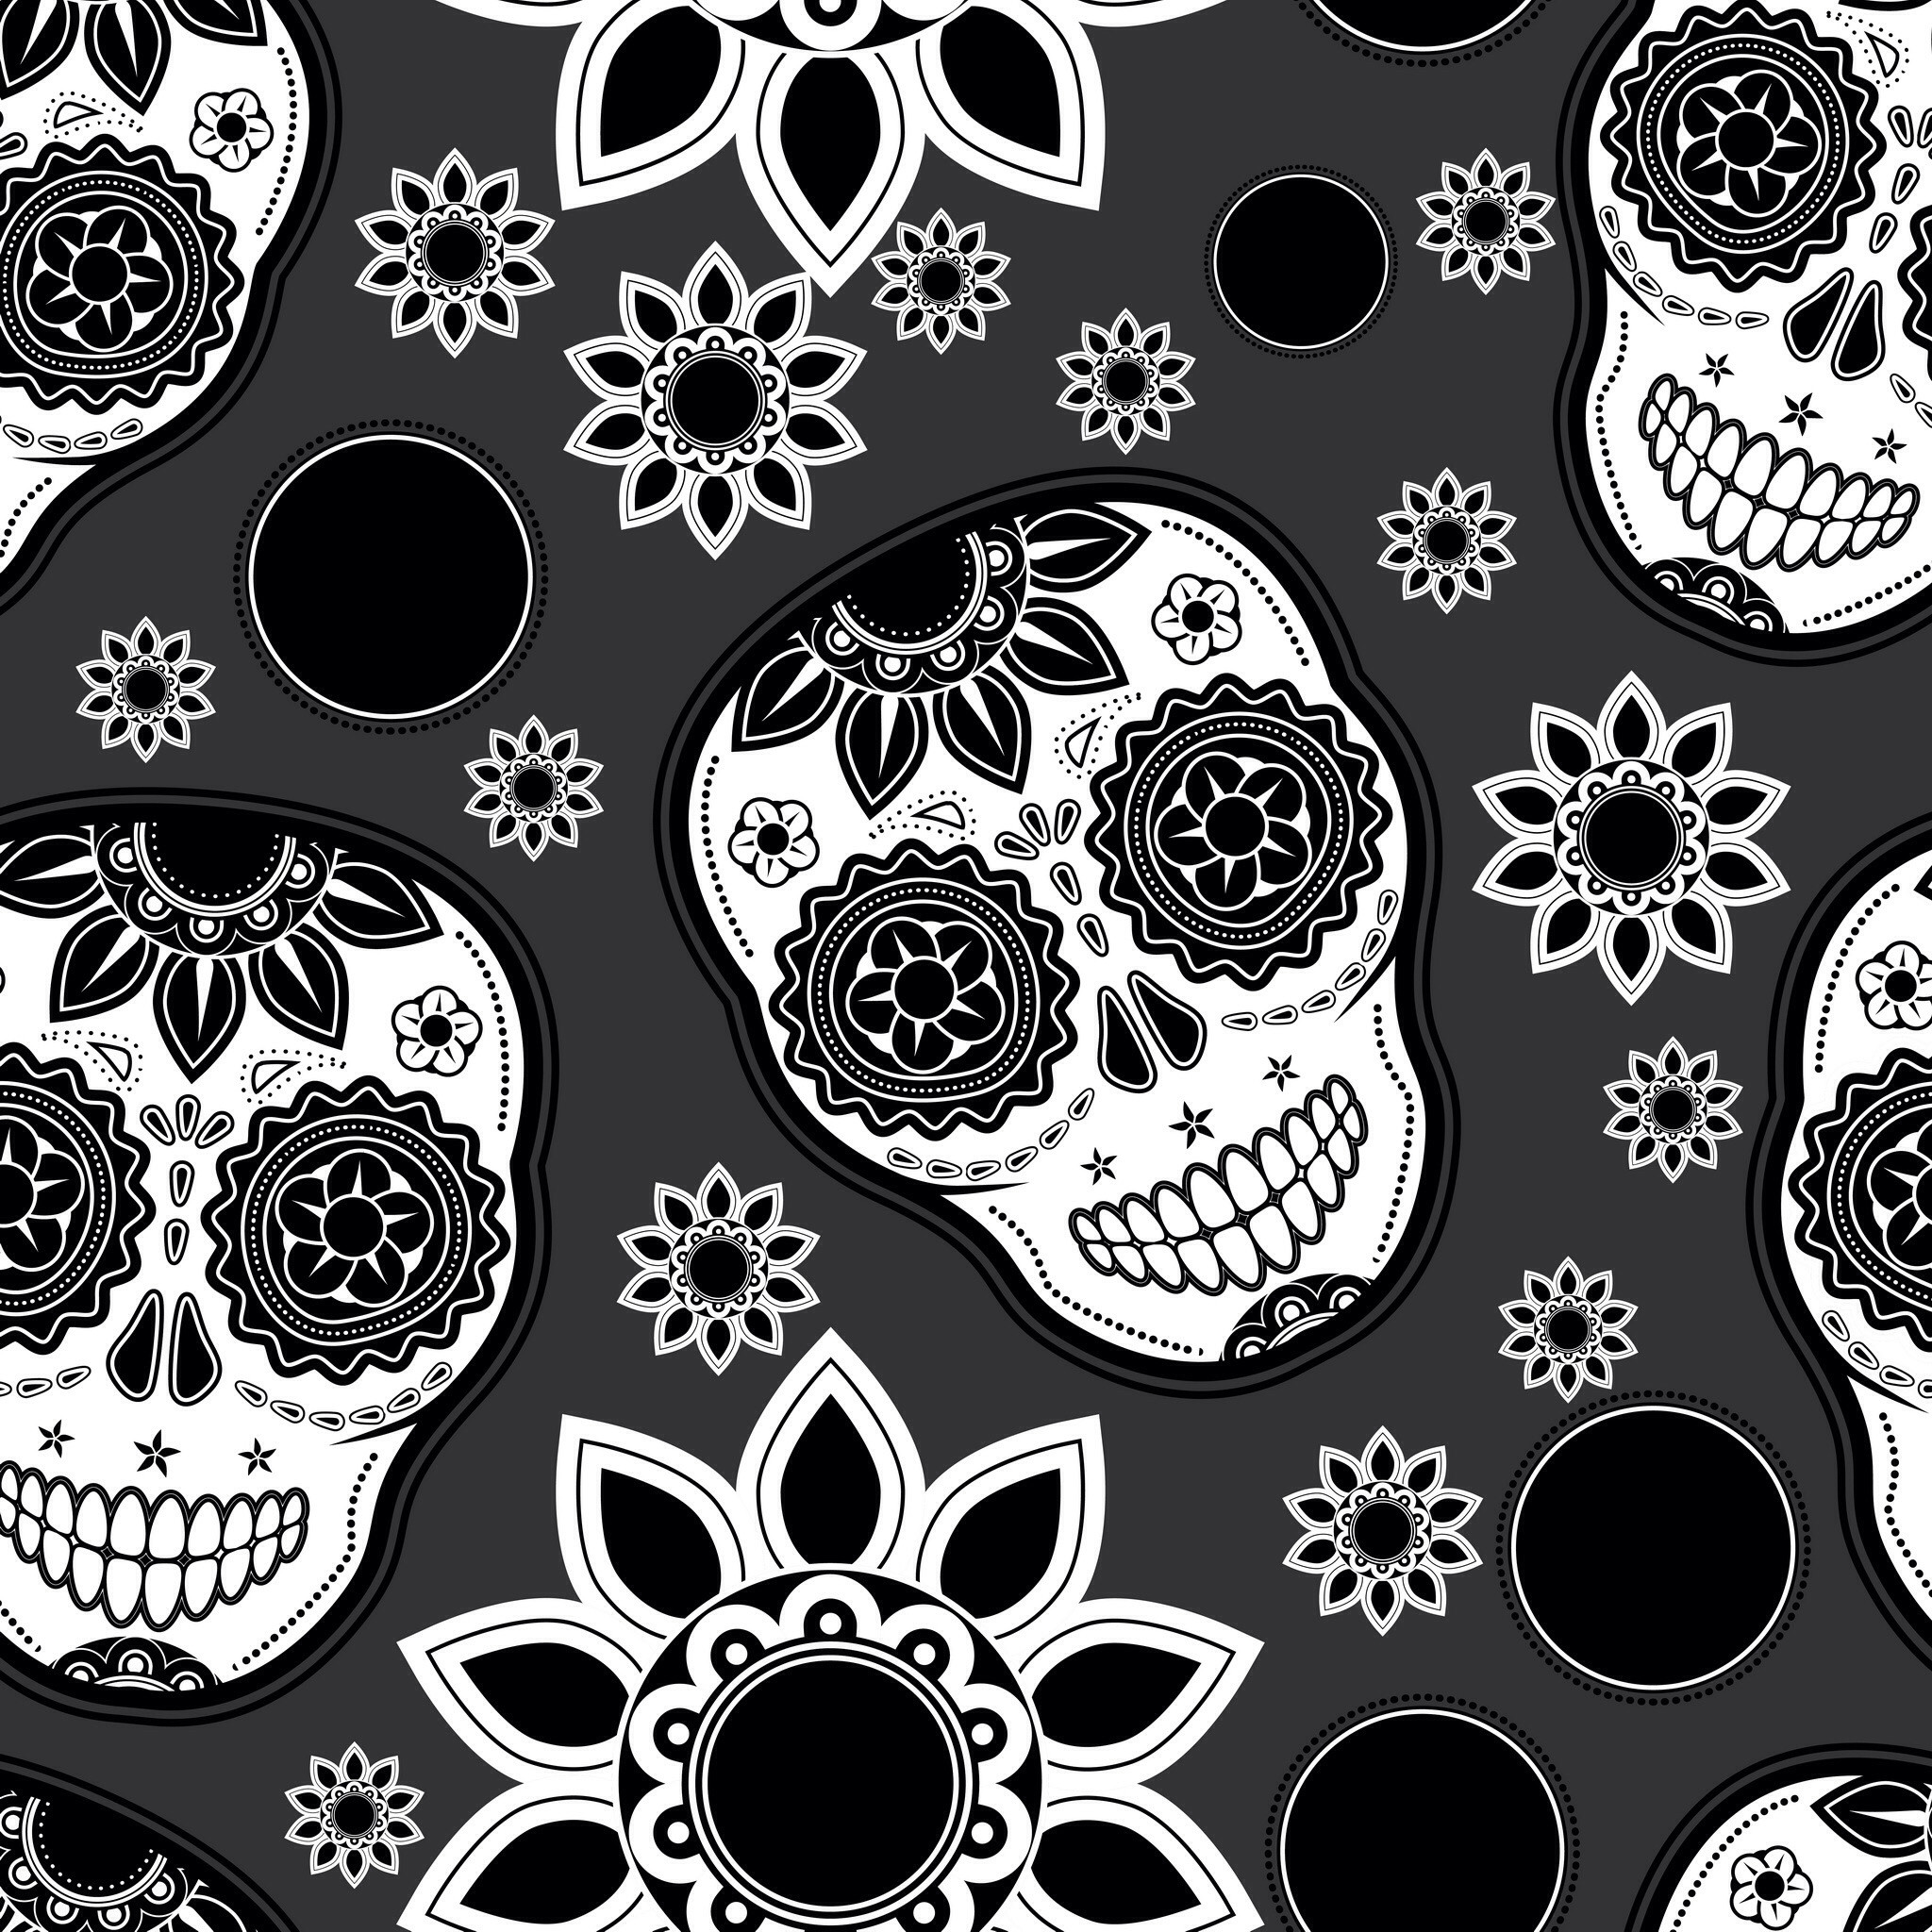 2048x2048 Explore Sugar Skull Wallpaper, Wallpaper For, and more!